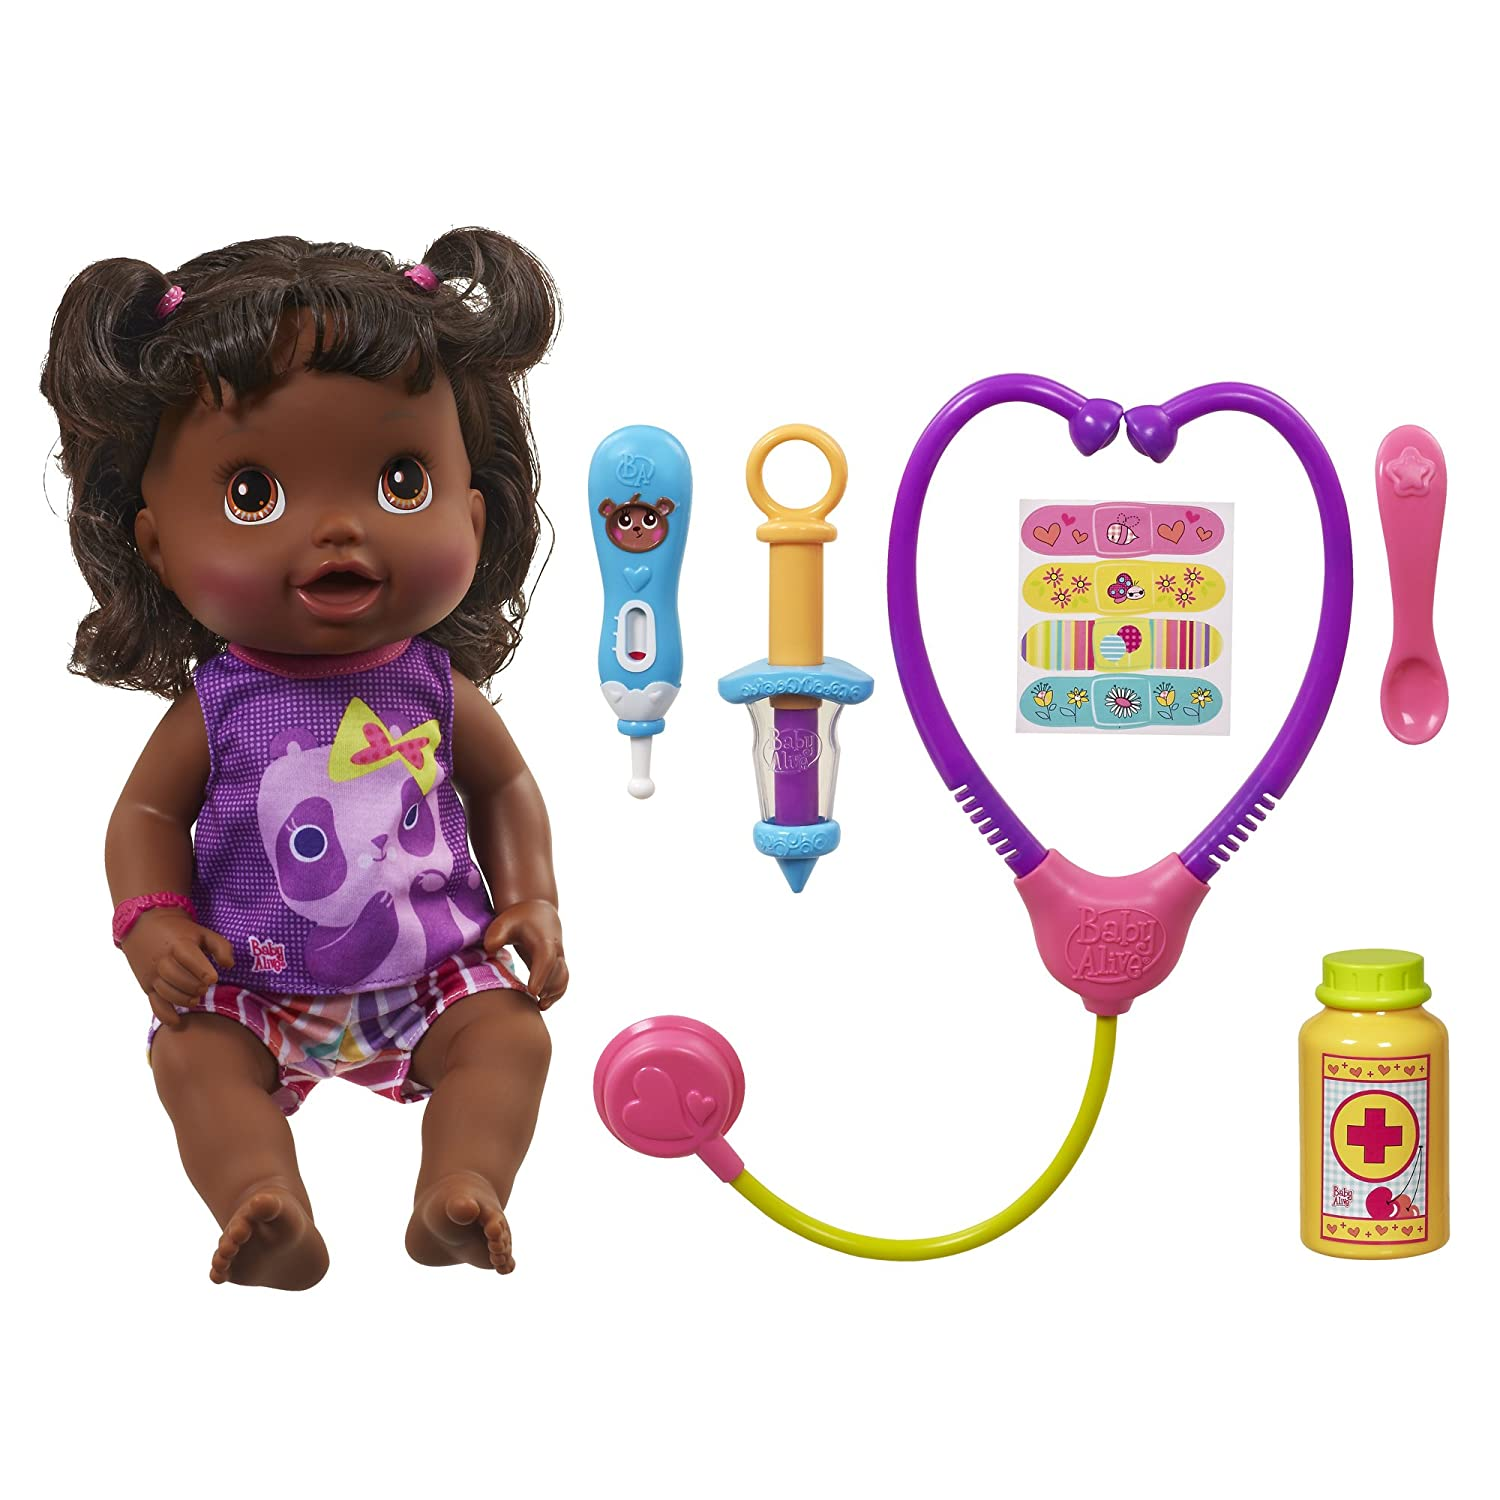 Baby Alive Make Me Better Baby Doll Amazon Toys & Games